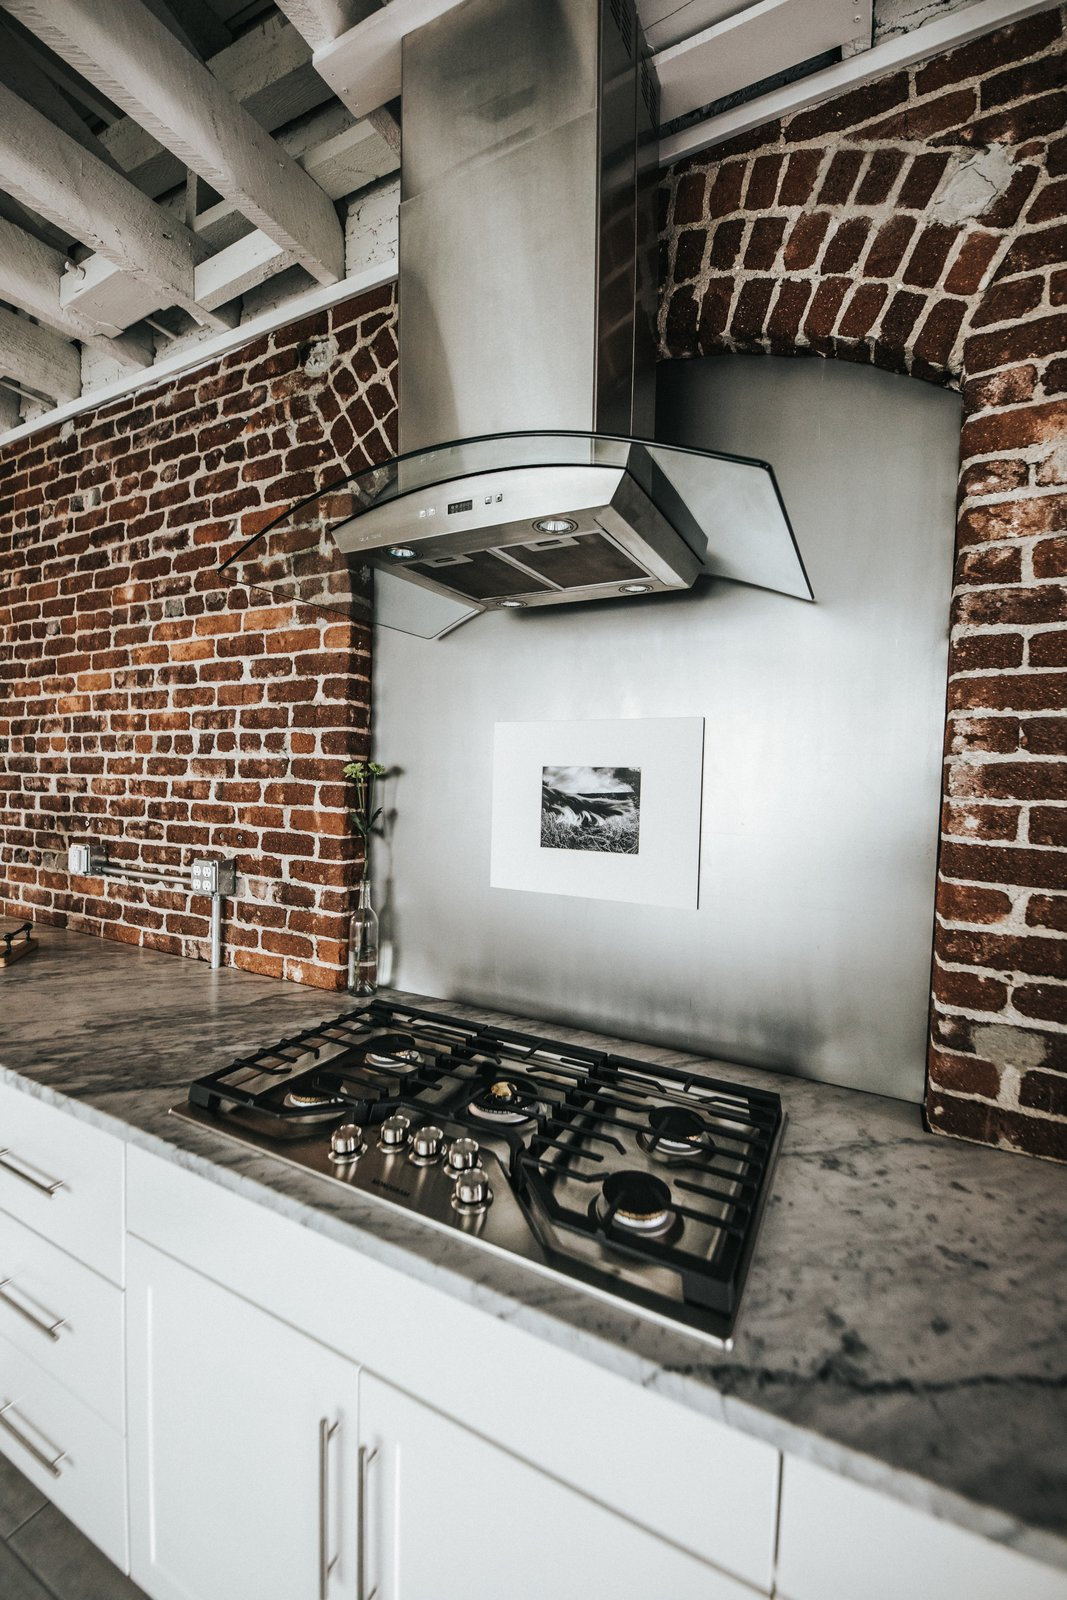 Kitchen, Brick Backsplashe, Marble Counter, Terrazzo Floor, Range Hood, White Cabinet, Cooktops, and Wood Cabinet Cooktop  Frindle